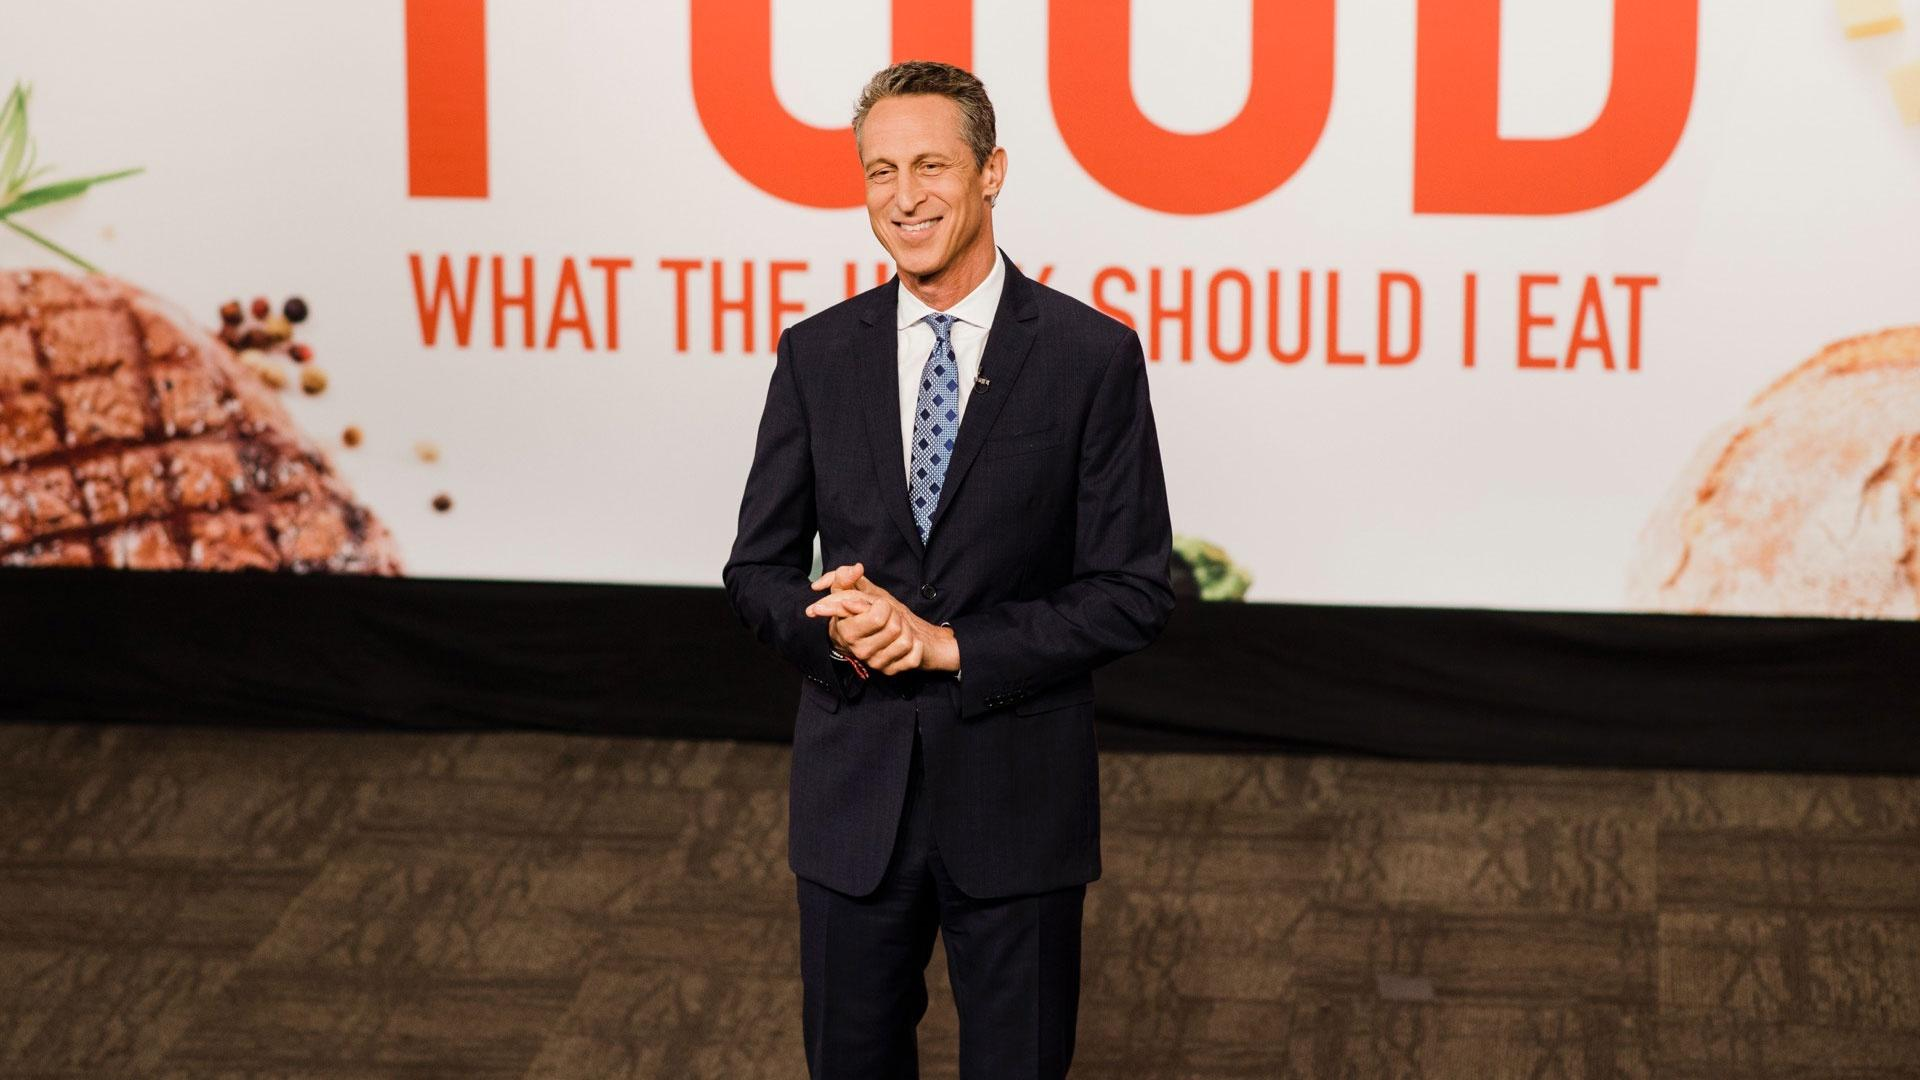 Food: What The Heck Should I Eat w/Mark Hyman